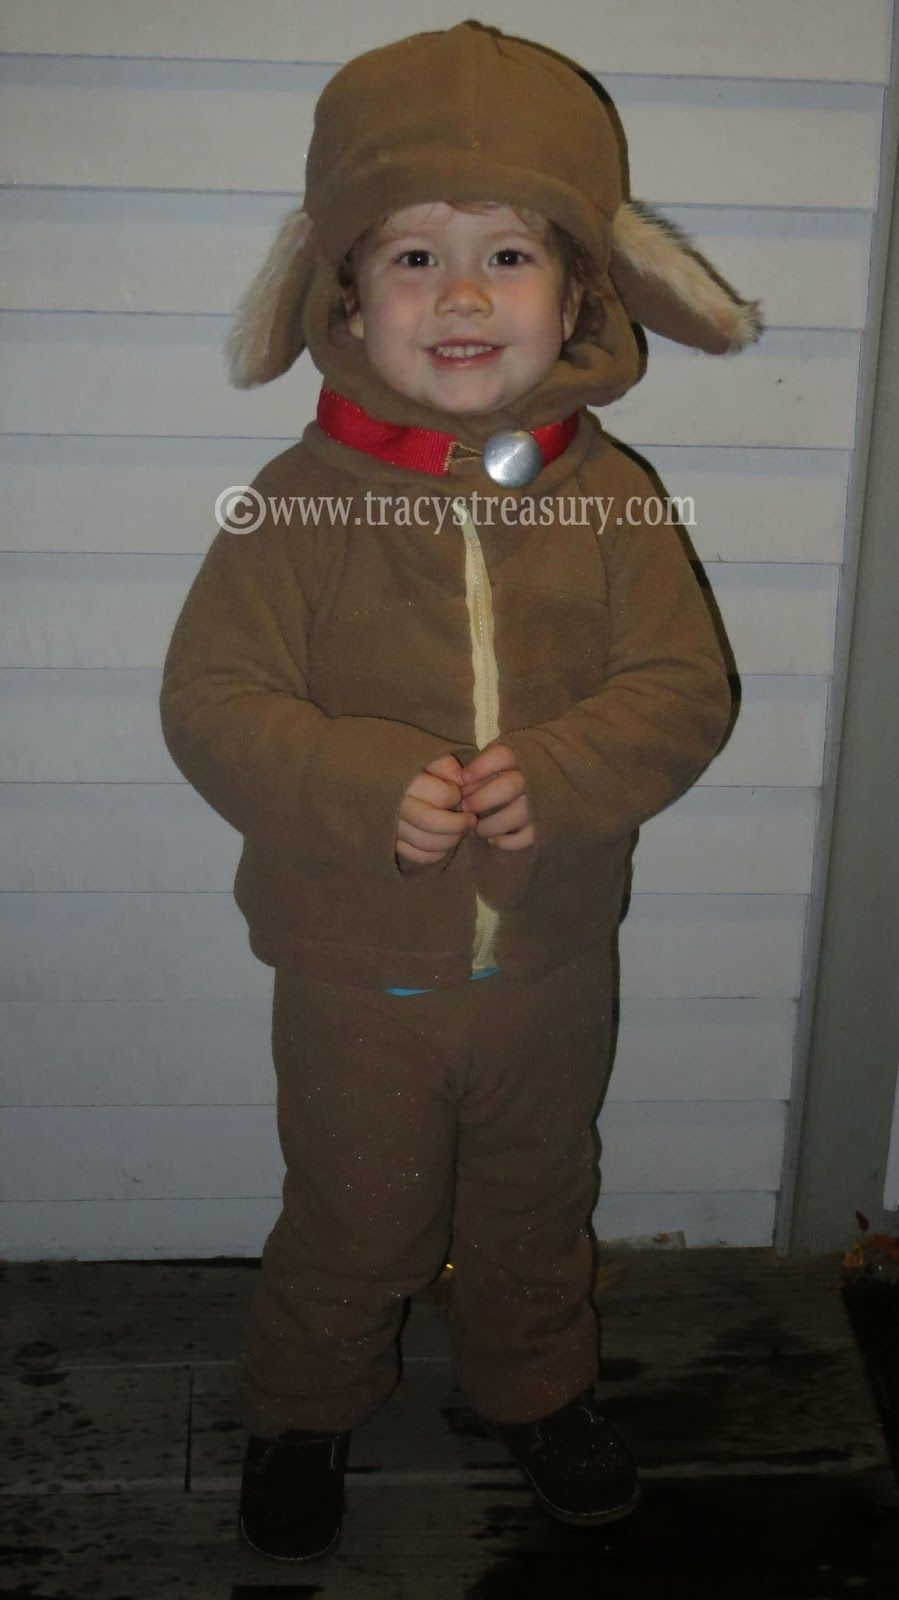 43685c3cc13 Tracy s Treasury  Ear Flap Hats for Warm Trick-or-Treaters! This is a free